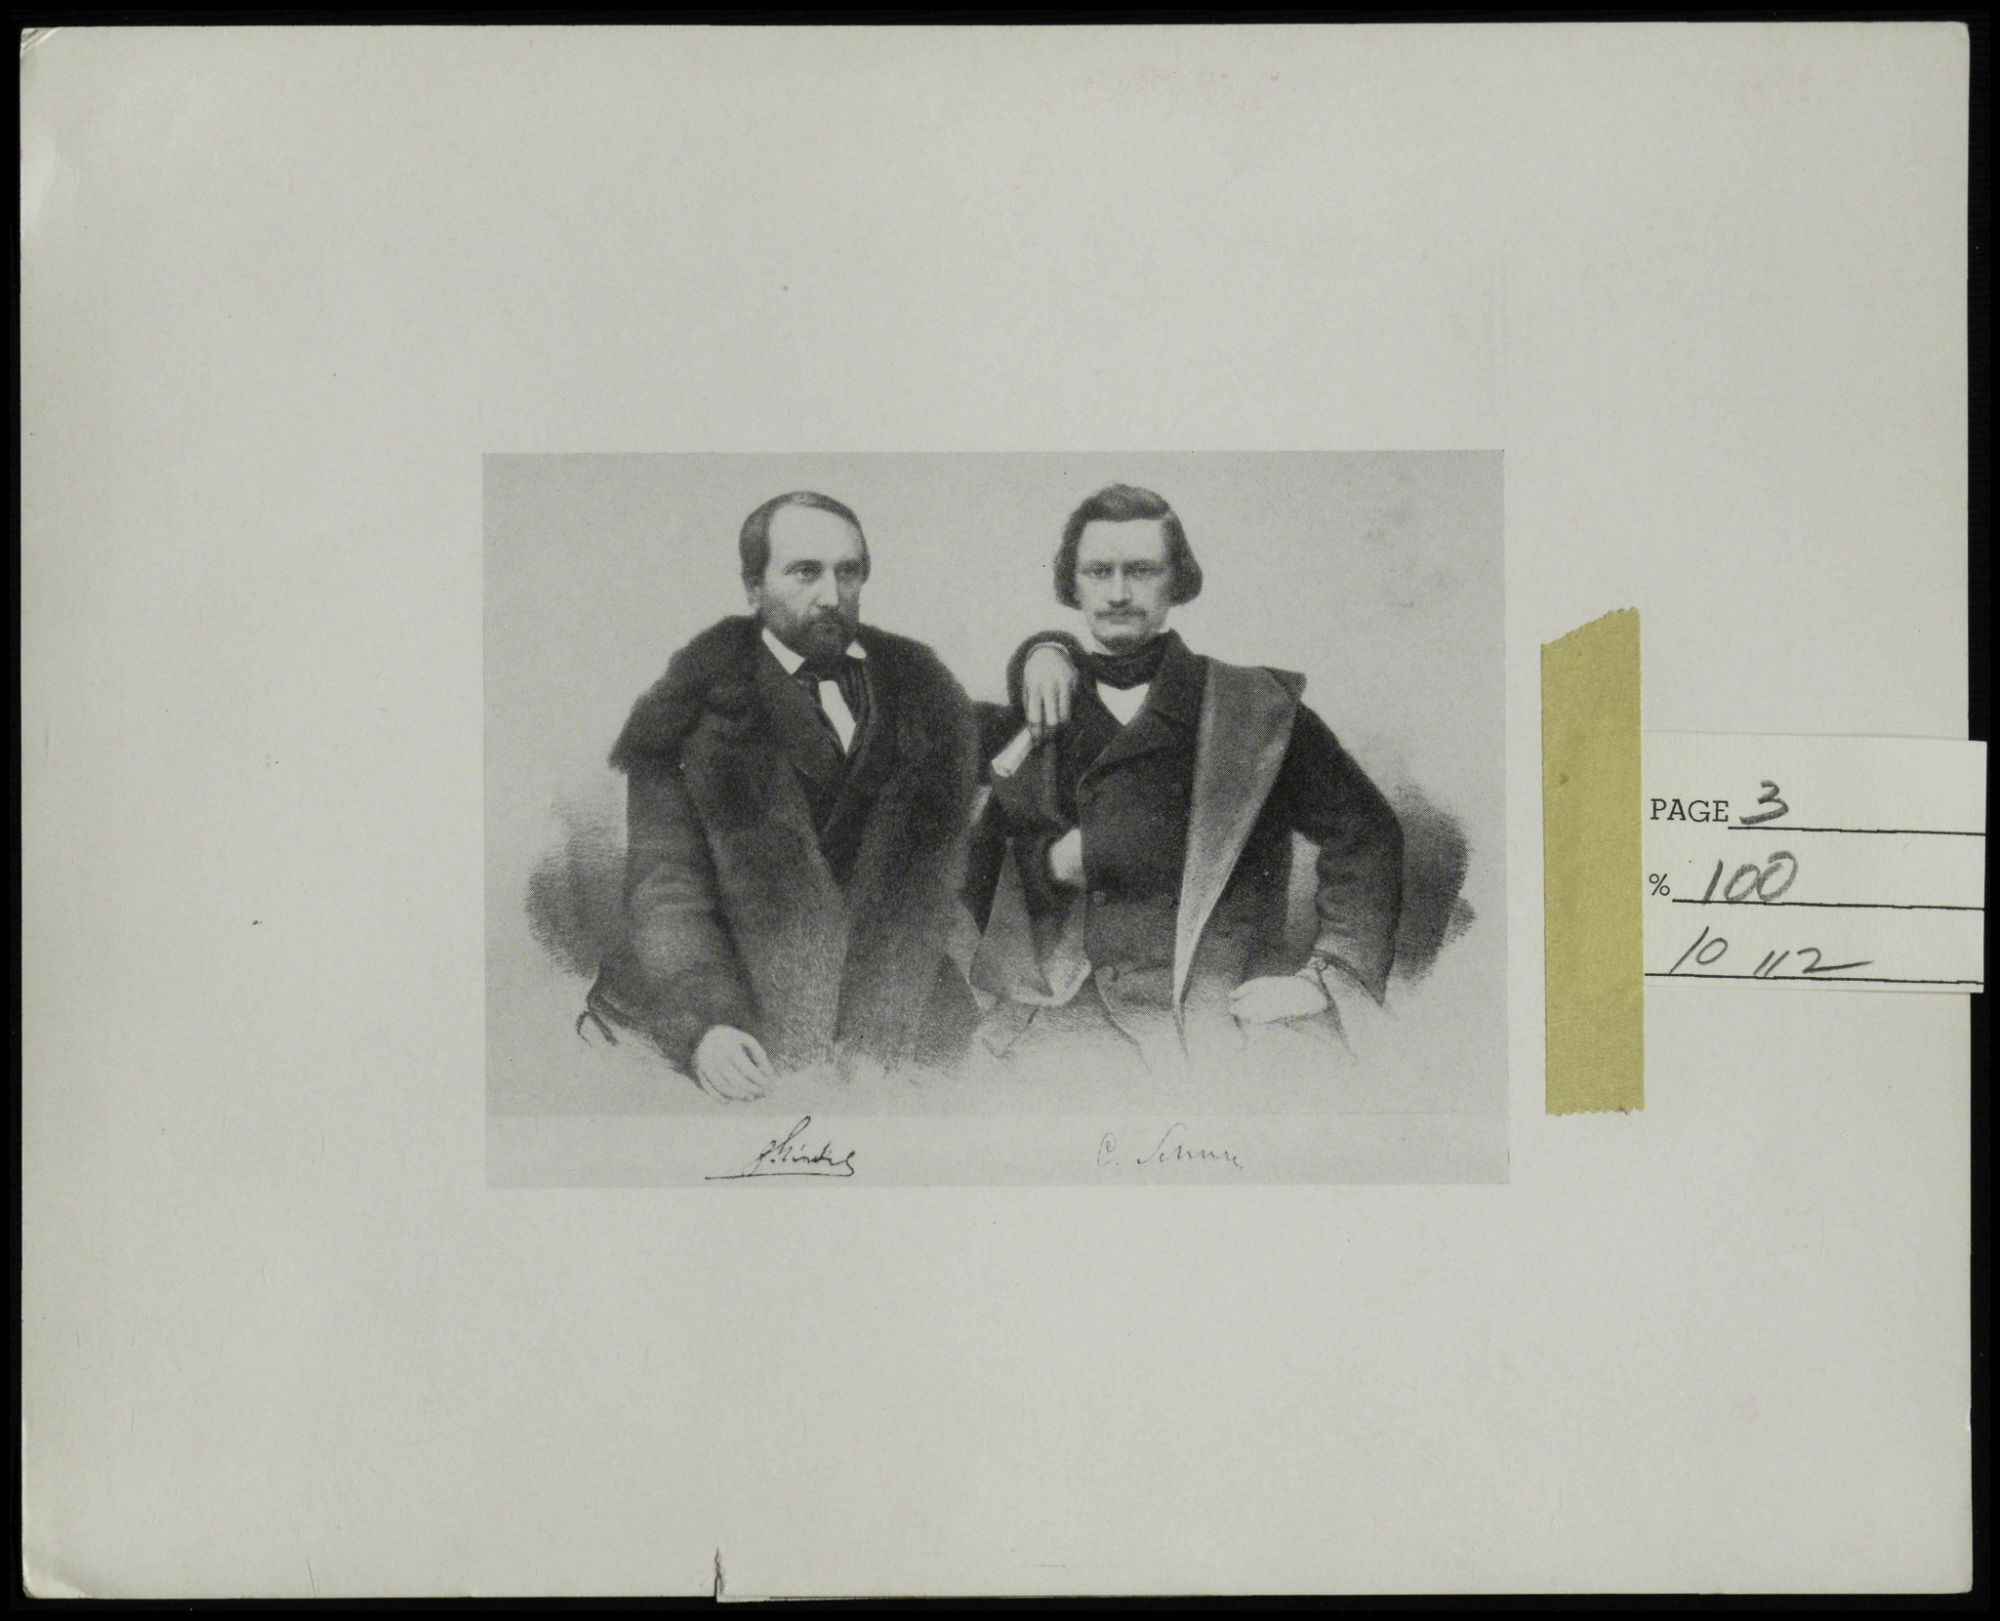 Carl Schurz, right, pictured with friend and mentor, Gottfried Kinkel